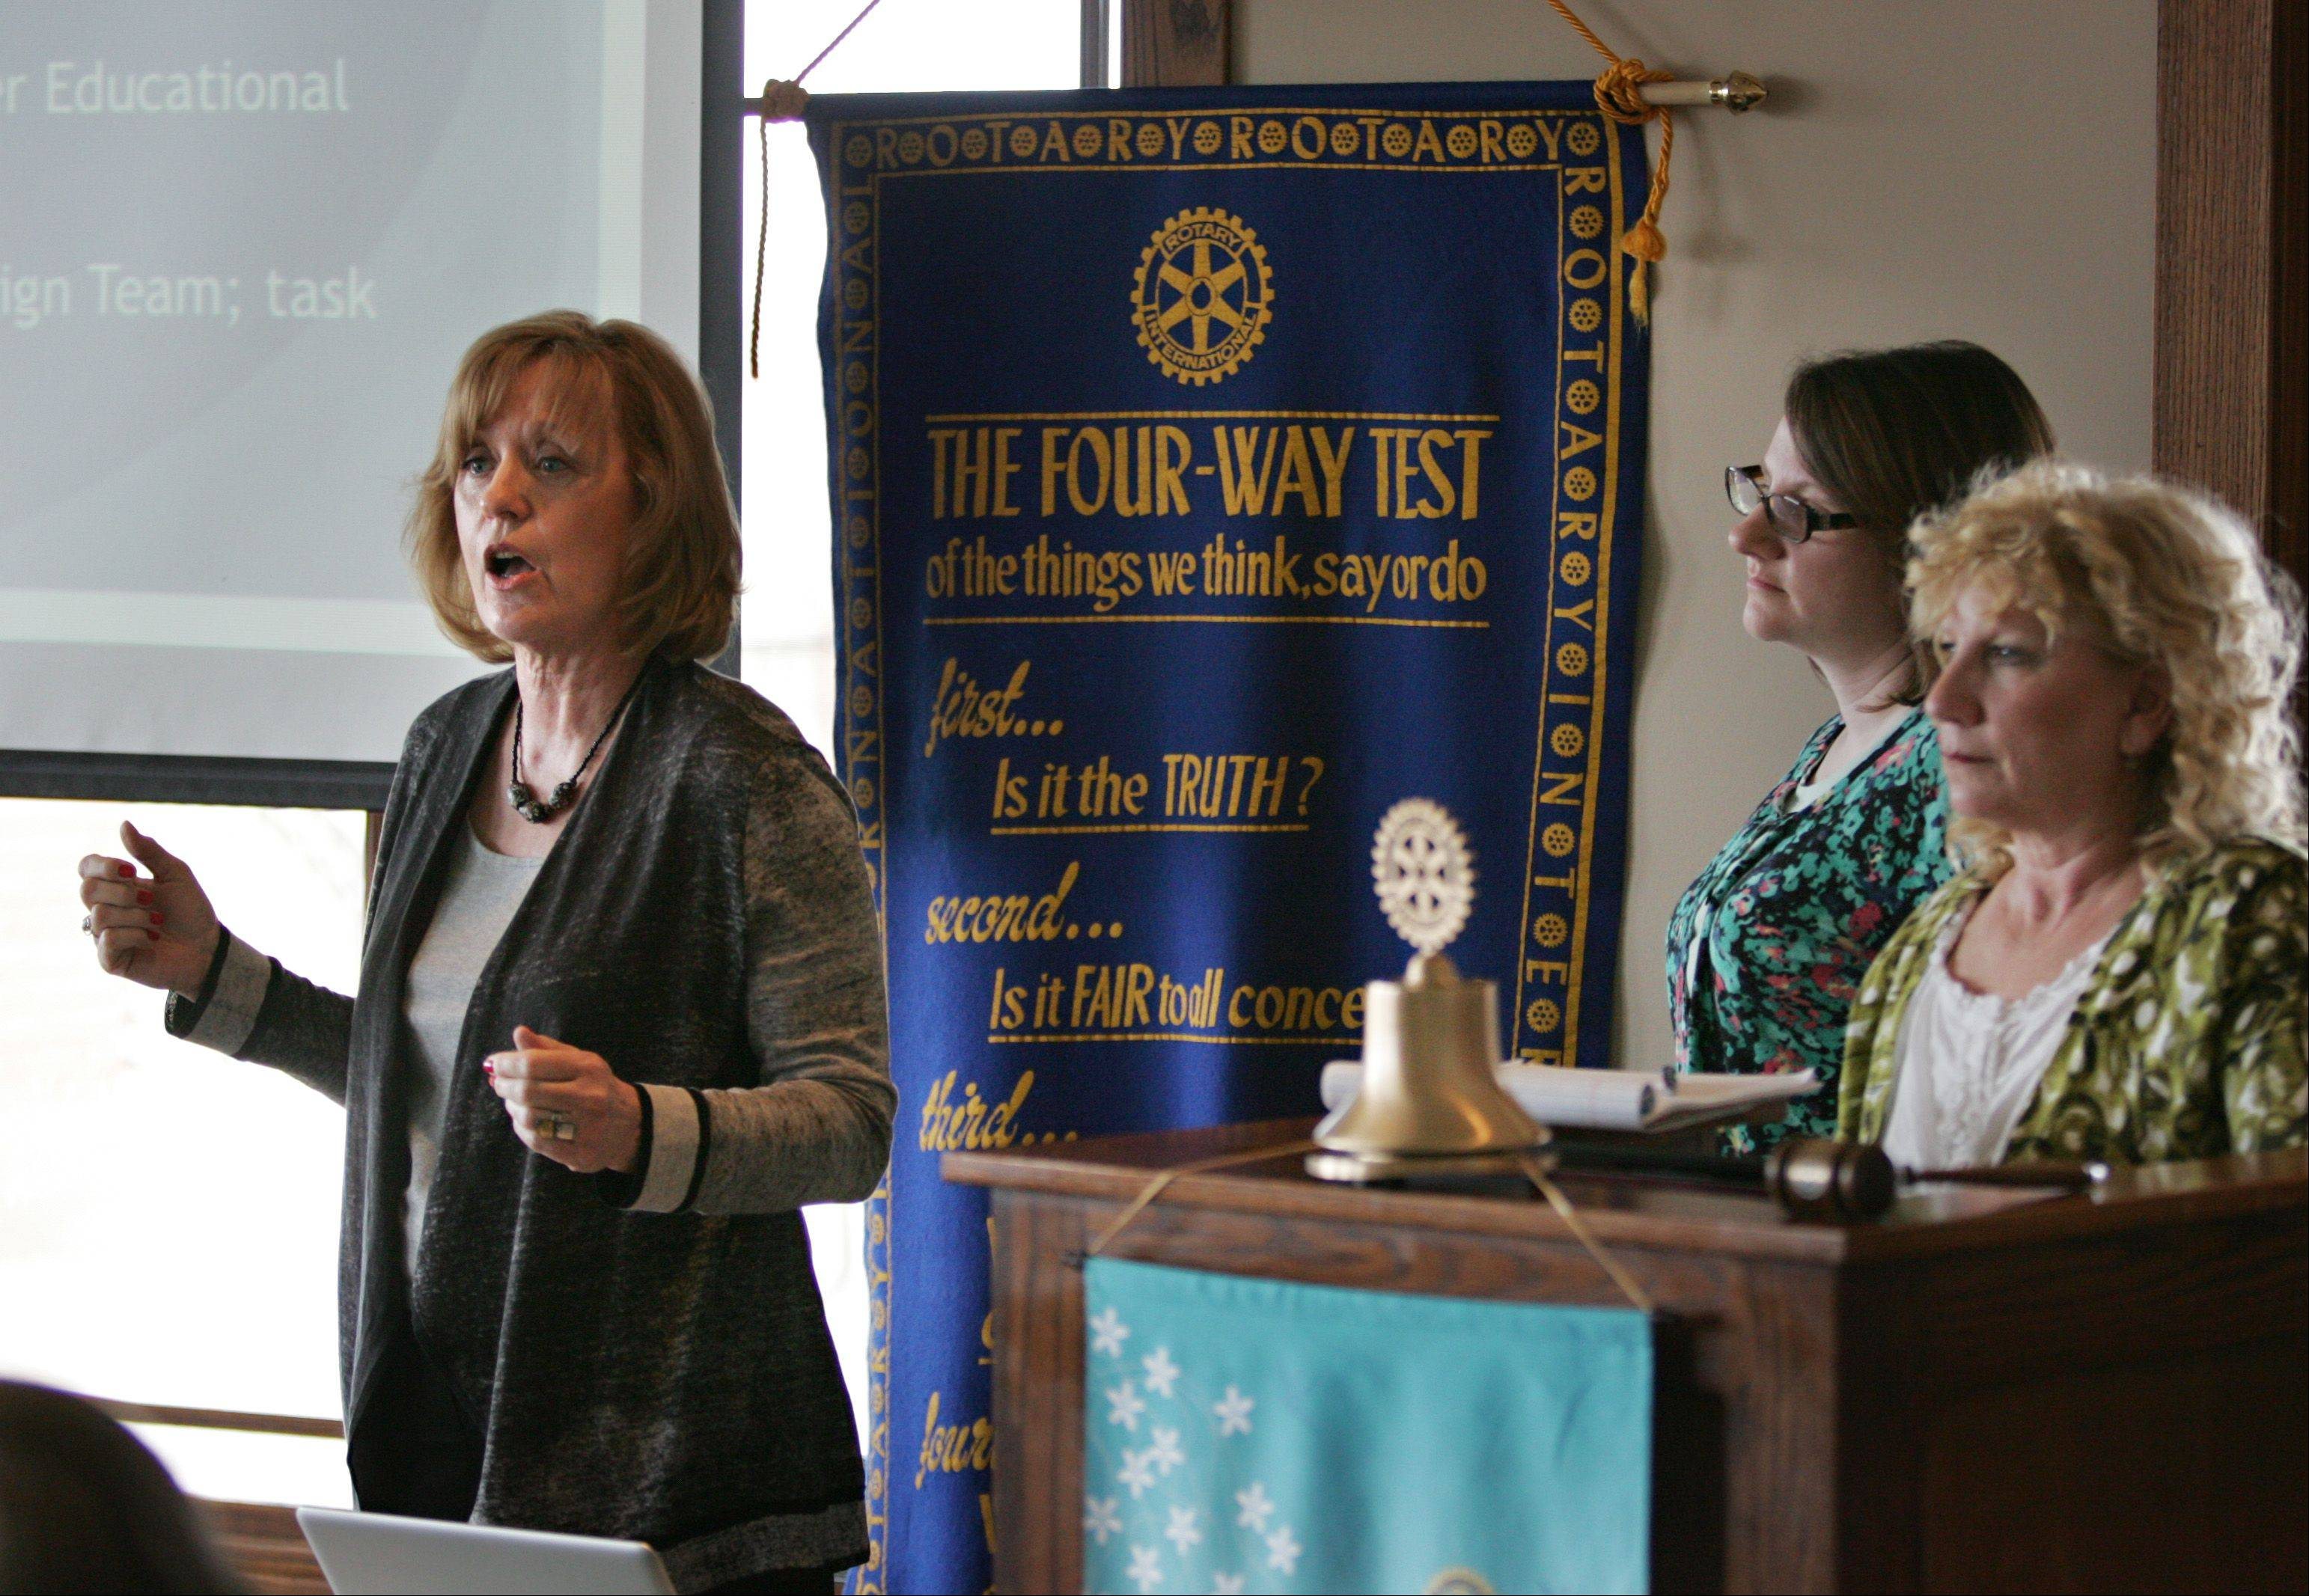 Karen Schock, president of the Elgin Math and Science Charter School Initiative, talks to members of the Elgin Noon Rotary Club about the group's charter school proposal. Group leaders will discuss their plans at a community forum Tuesday.